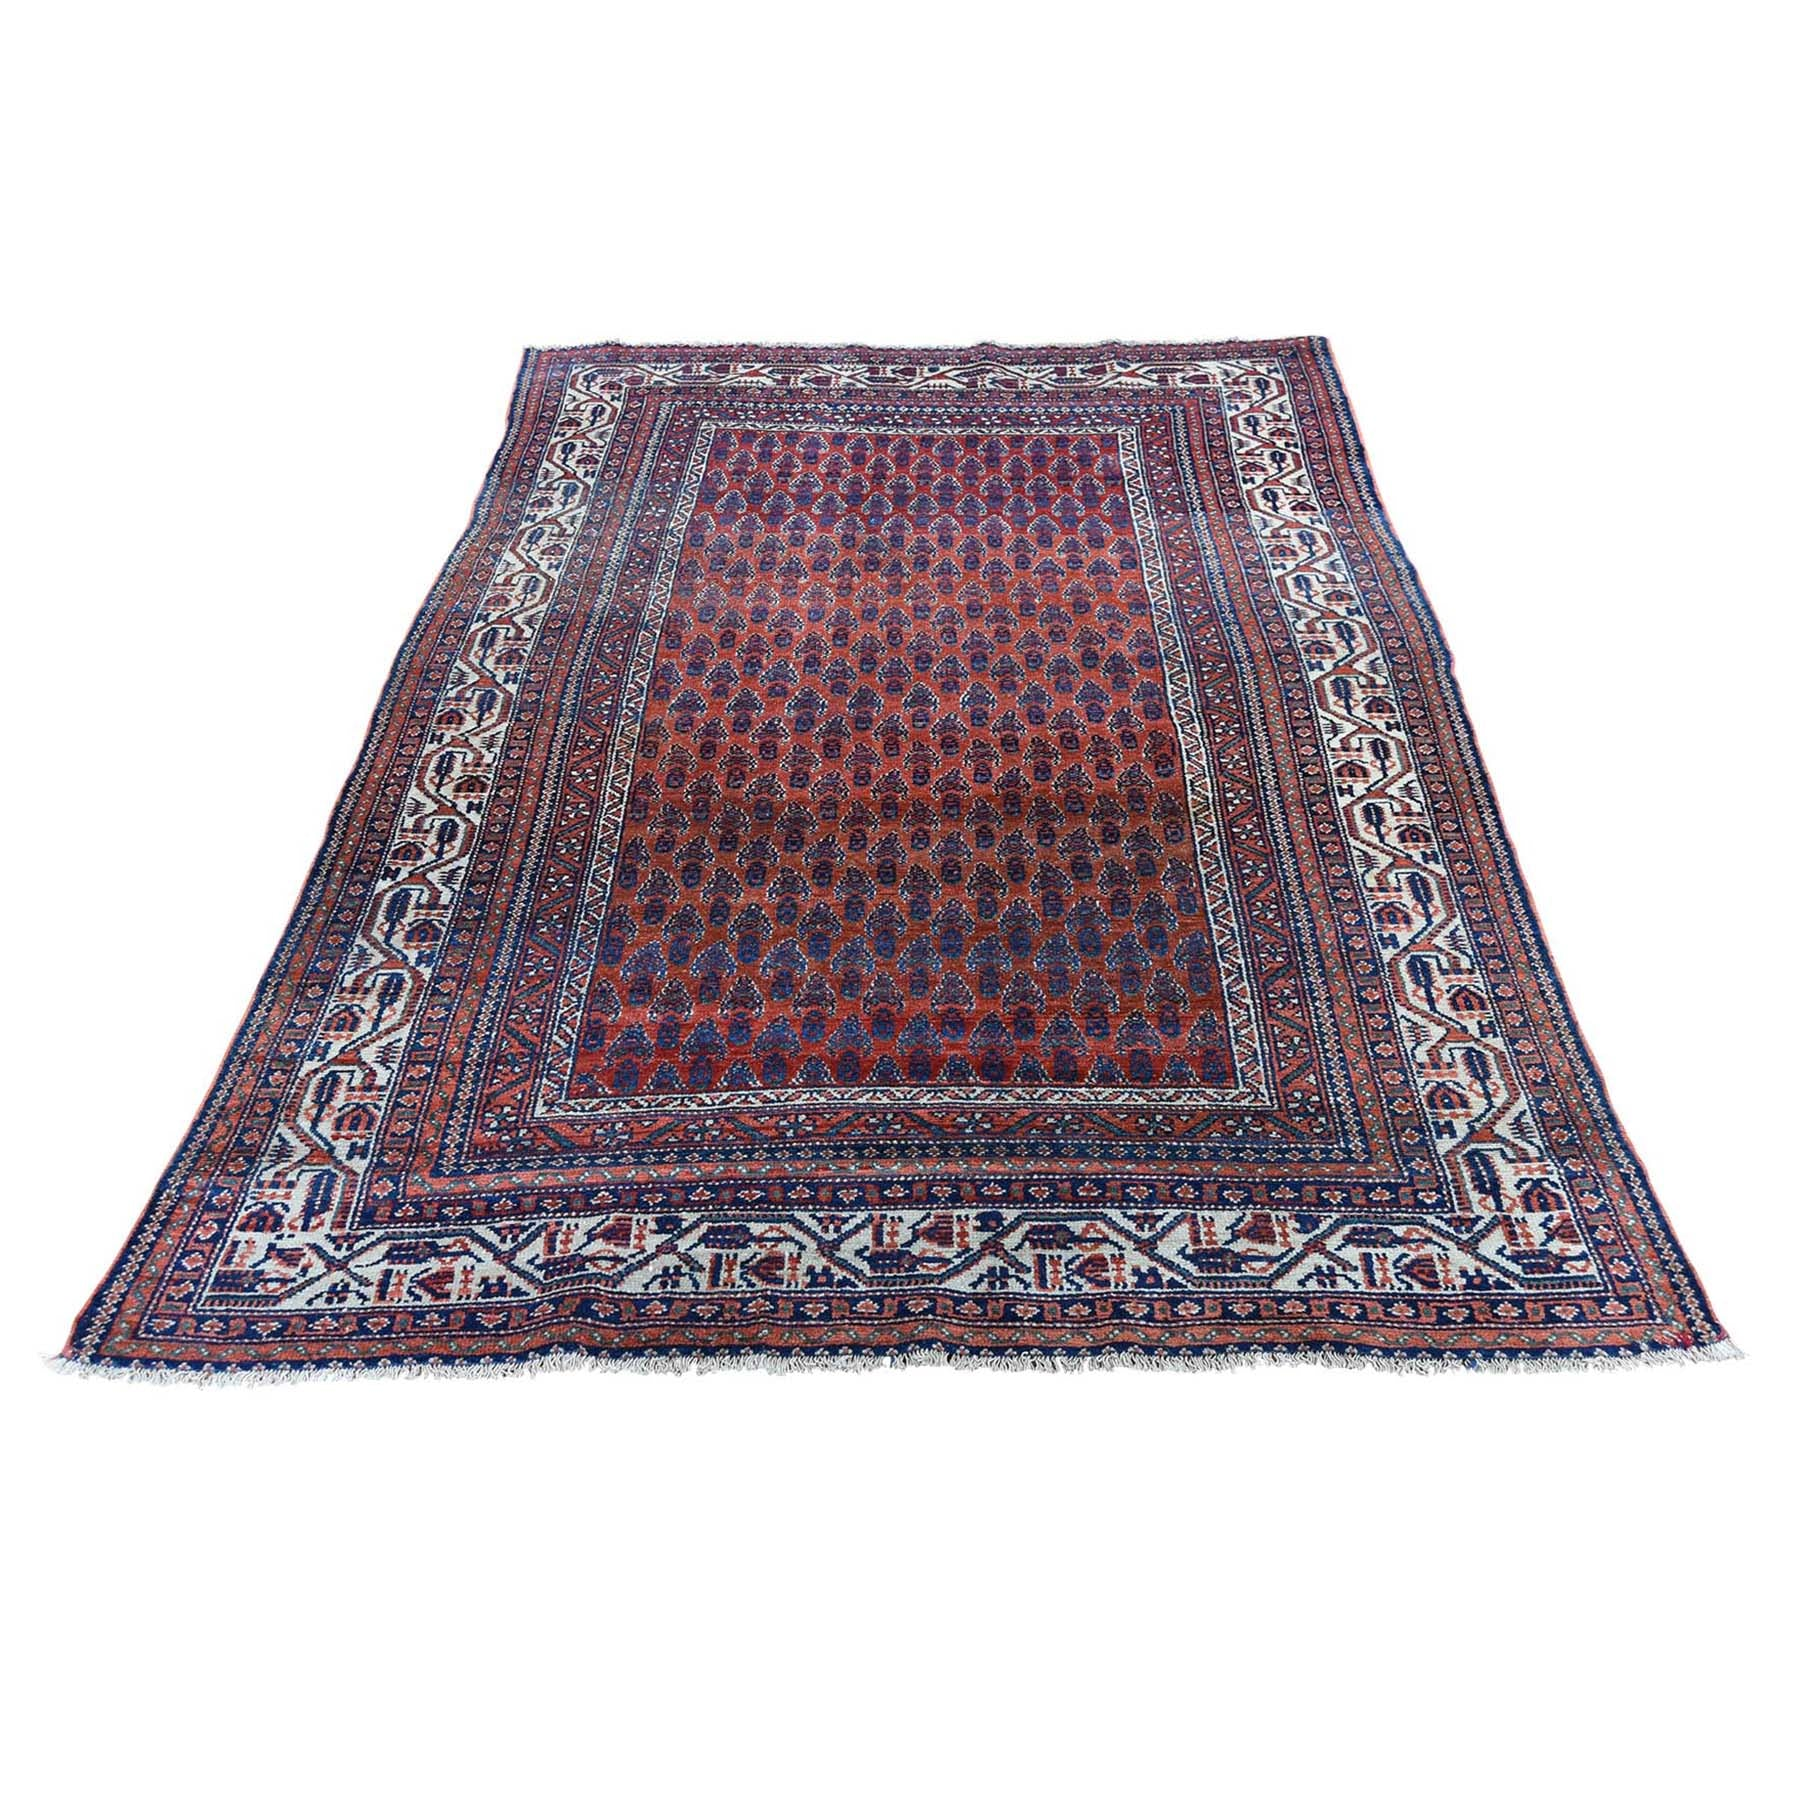 "Handmade Antique Rectangle Rug > Design# SH46195 > Size: 4'-5"" x 6'-5"" [ONLINE ONLY]"